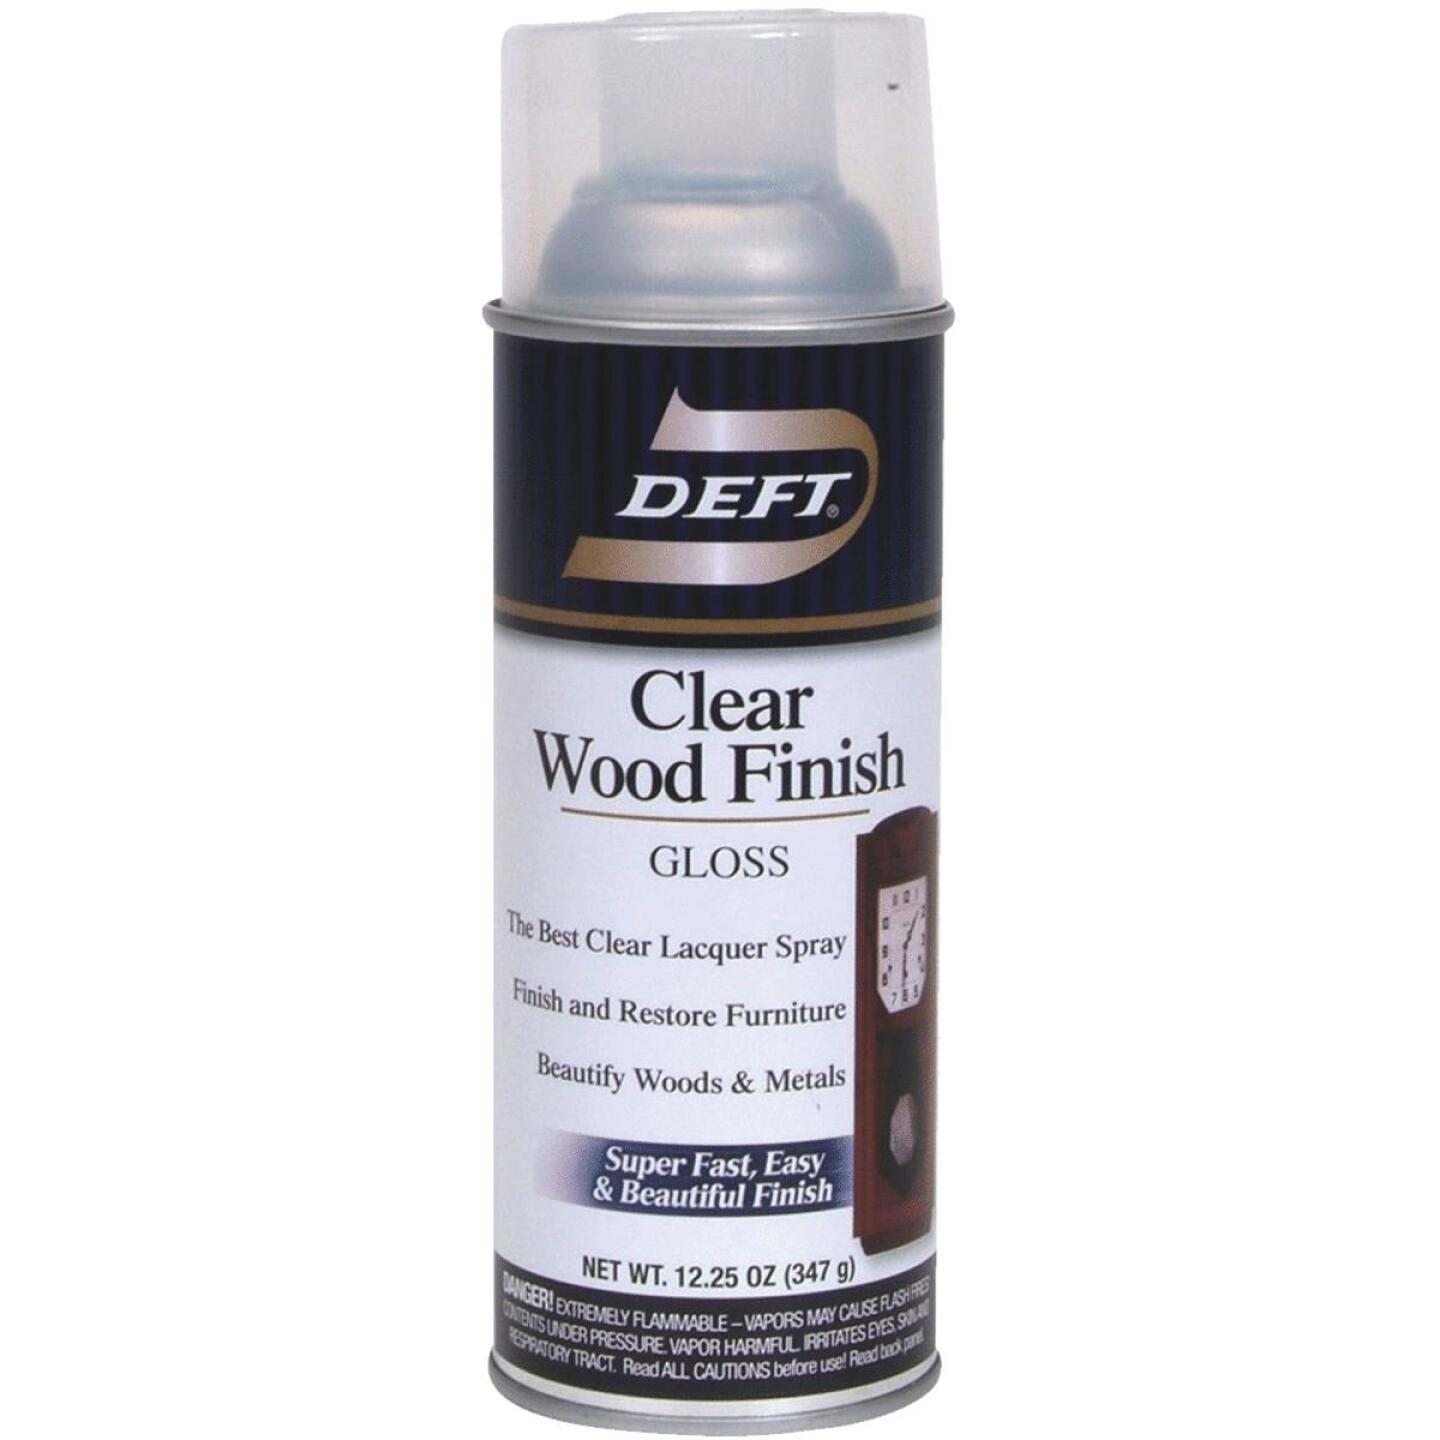 Deft 12.25 Oz. Gloss Clear Wood Finish Interior Spray Lacquer Image 1